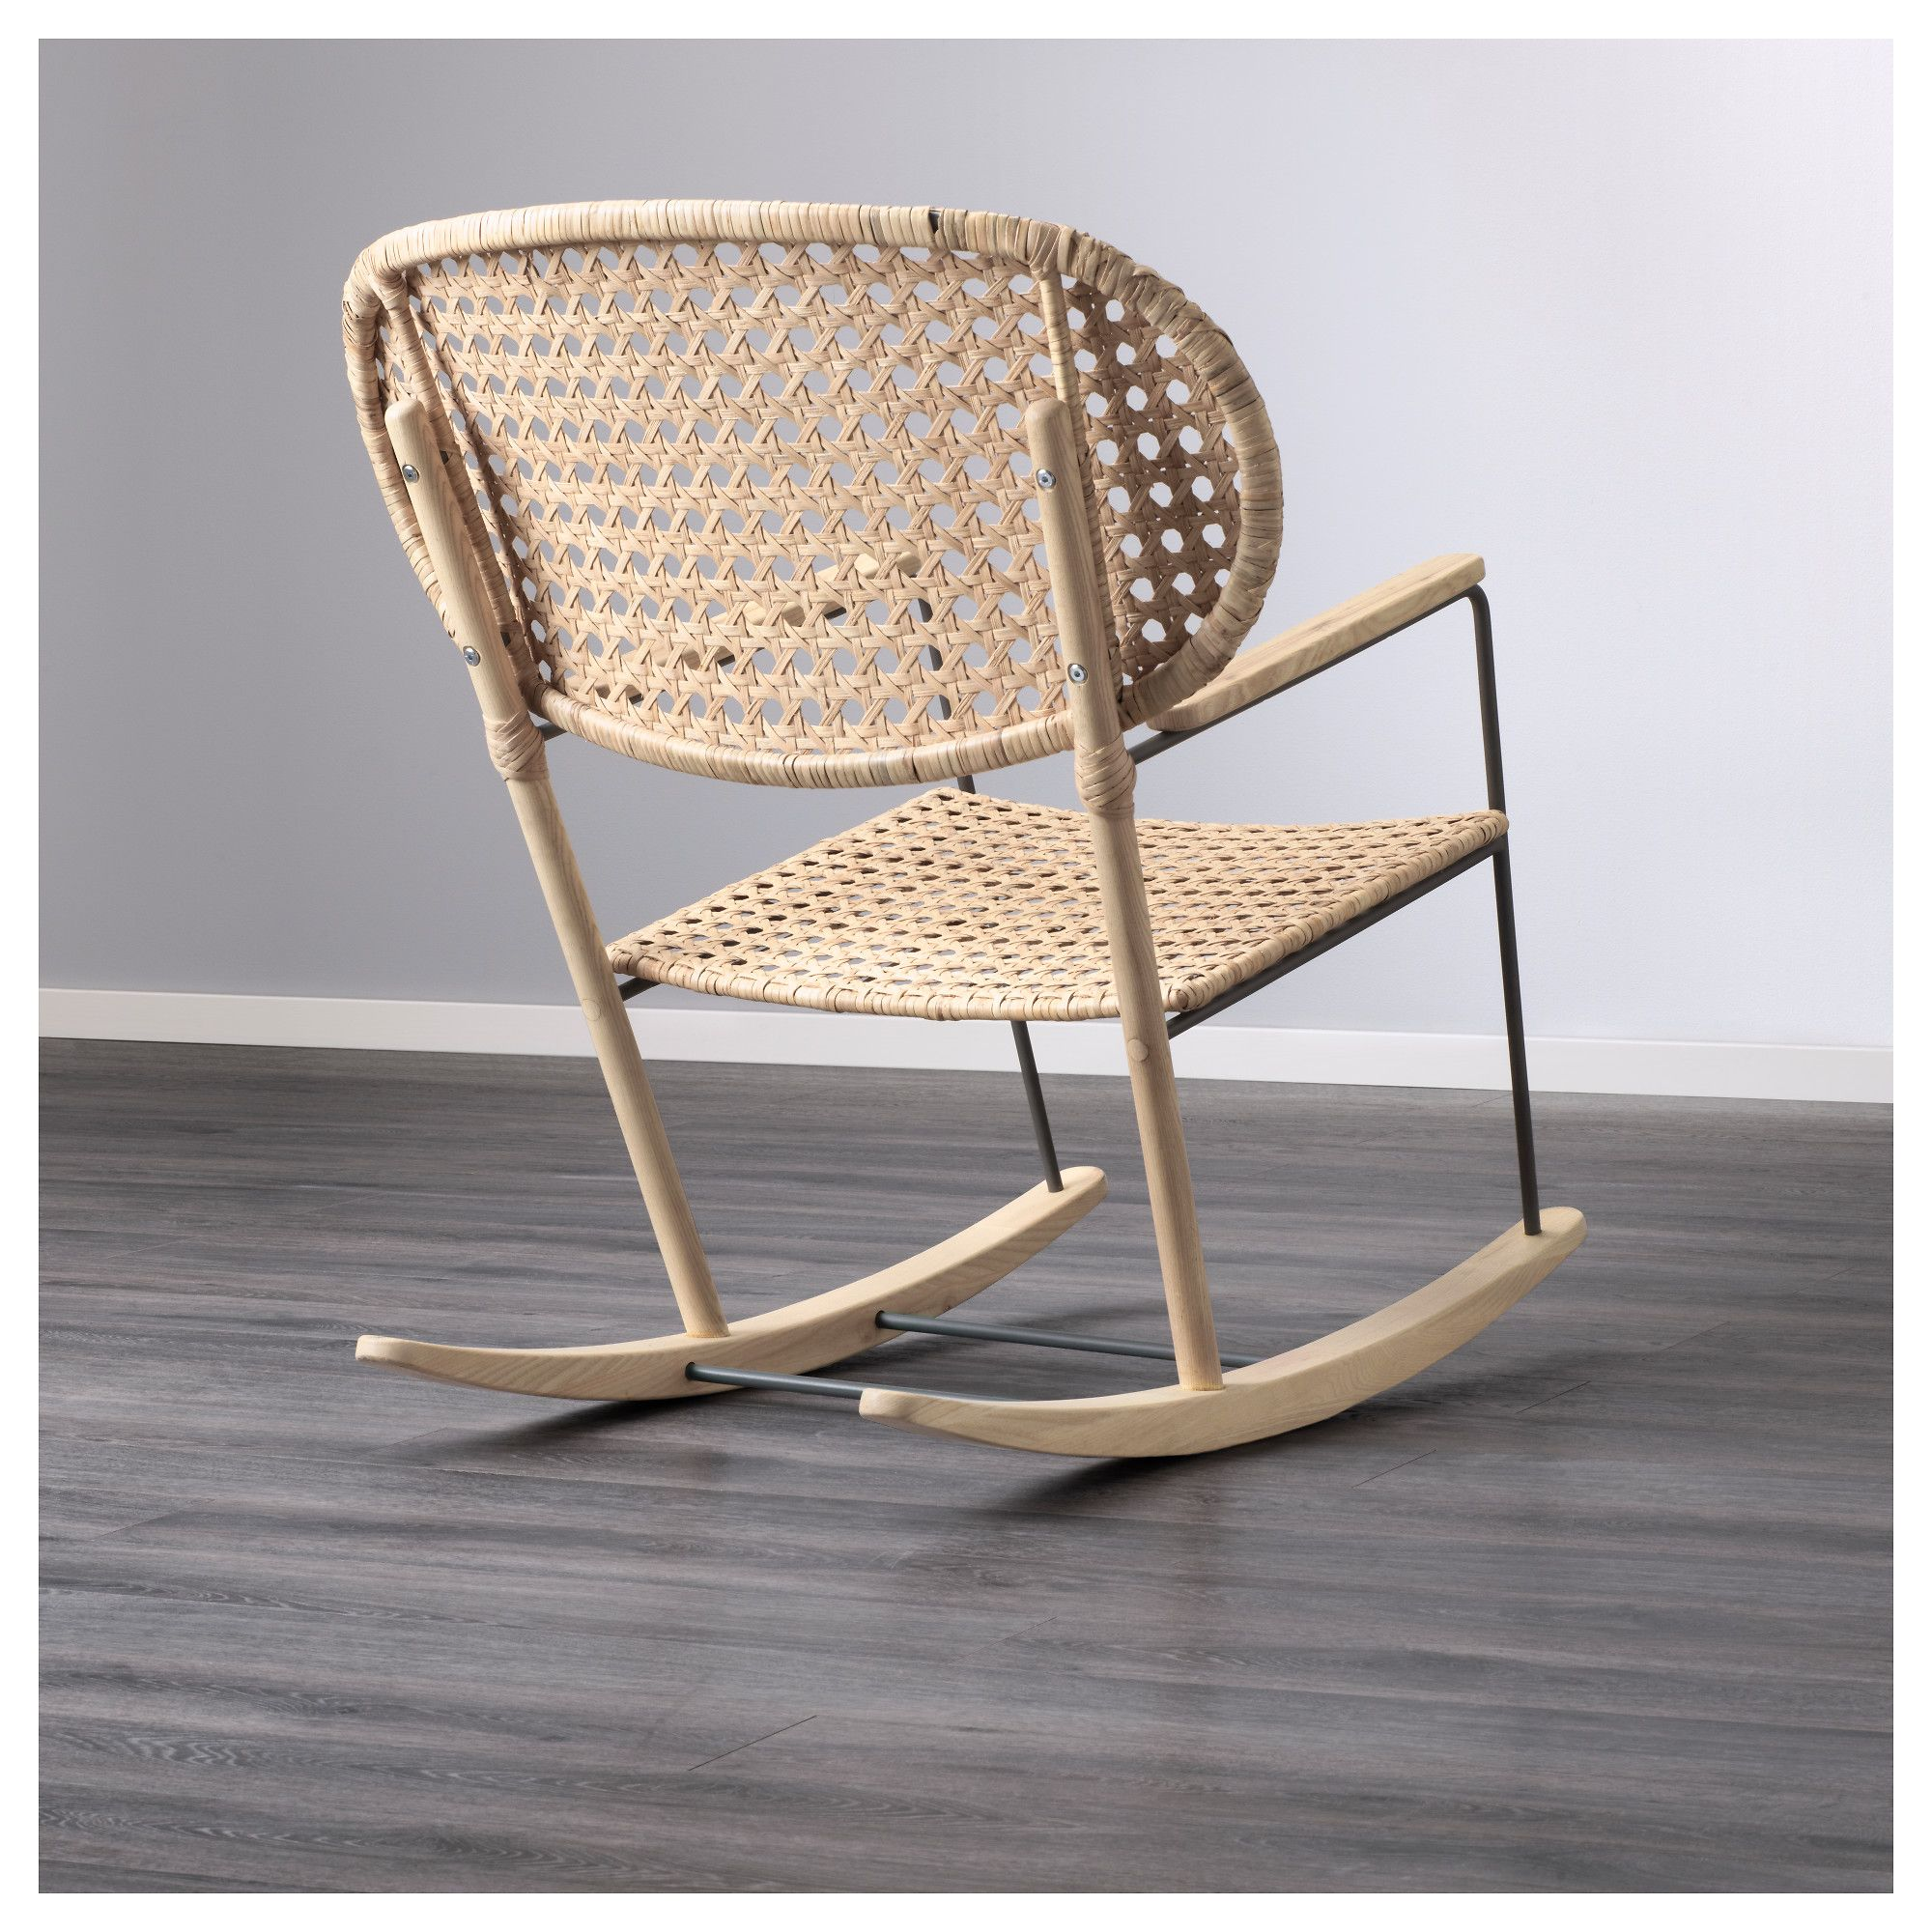 Ikea Gronadal Rocking Chair Gray Natural In 2018 70s Resort